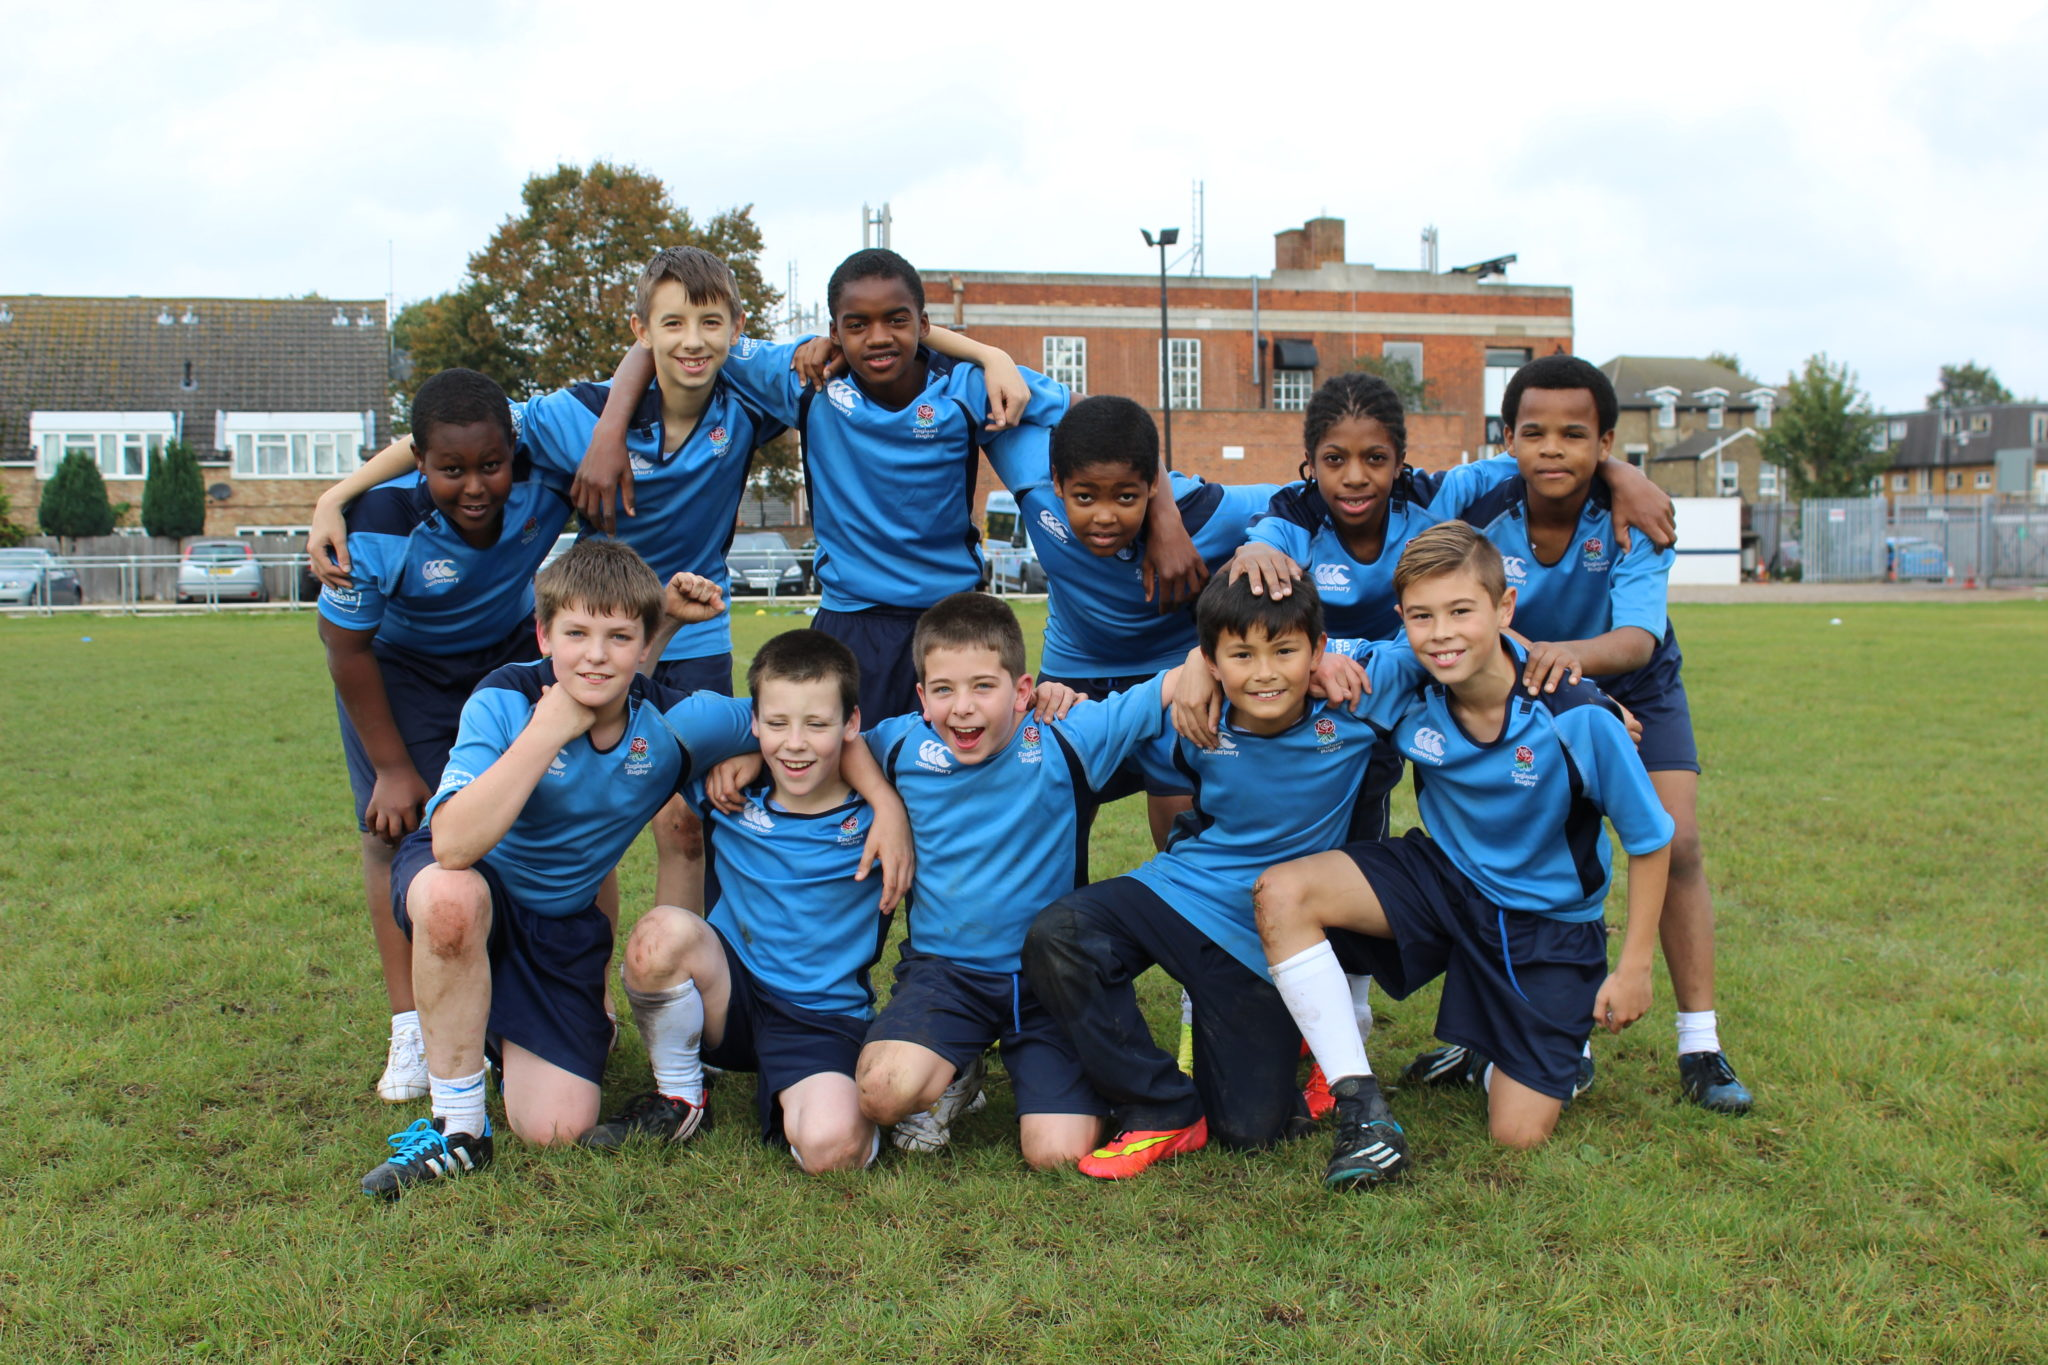 Quest Academy School In South Croydon Rugby Festival